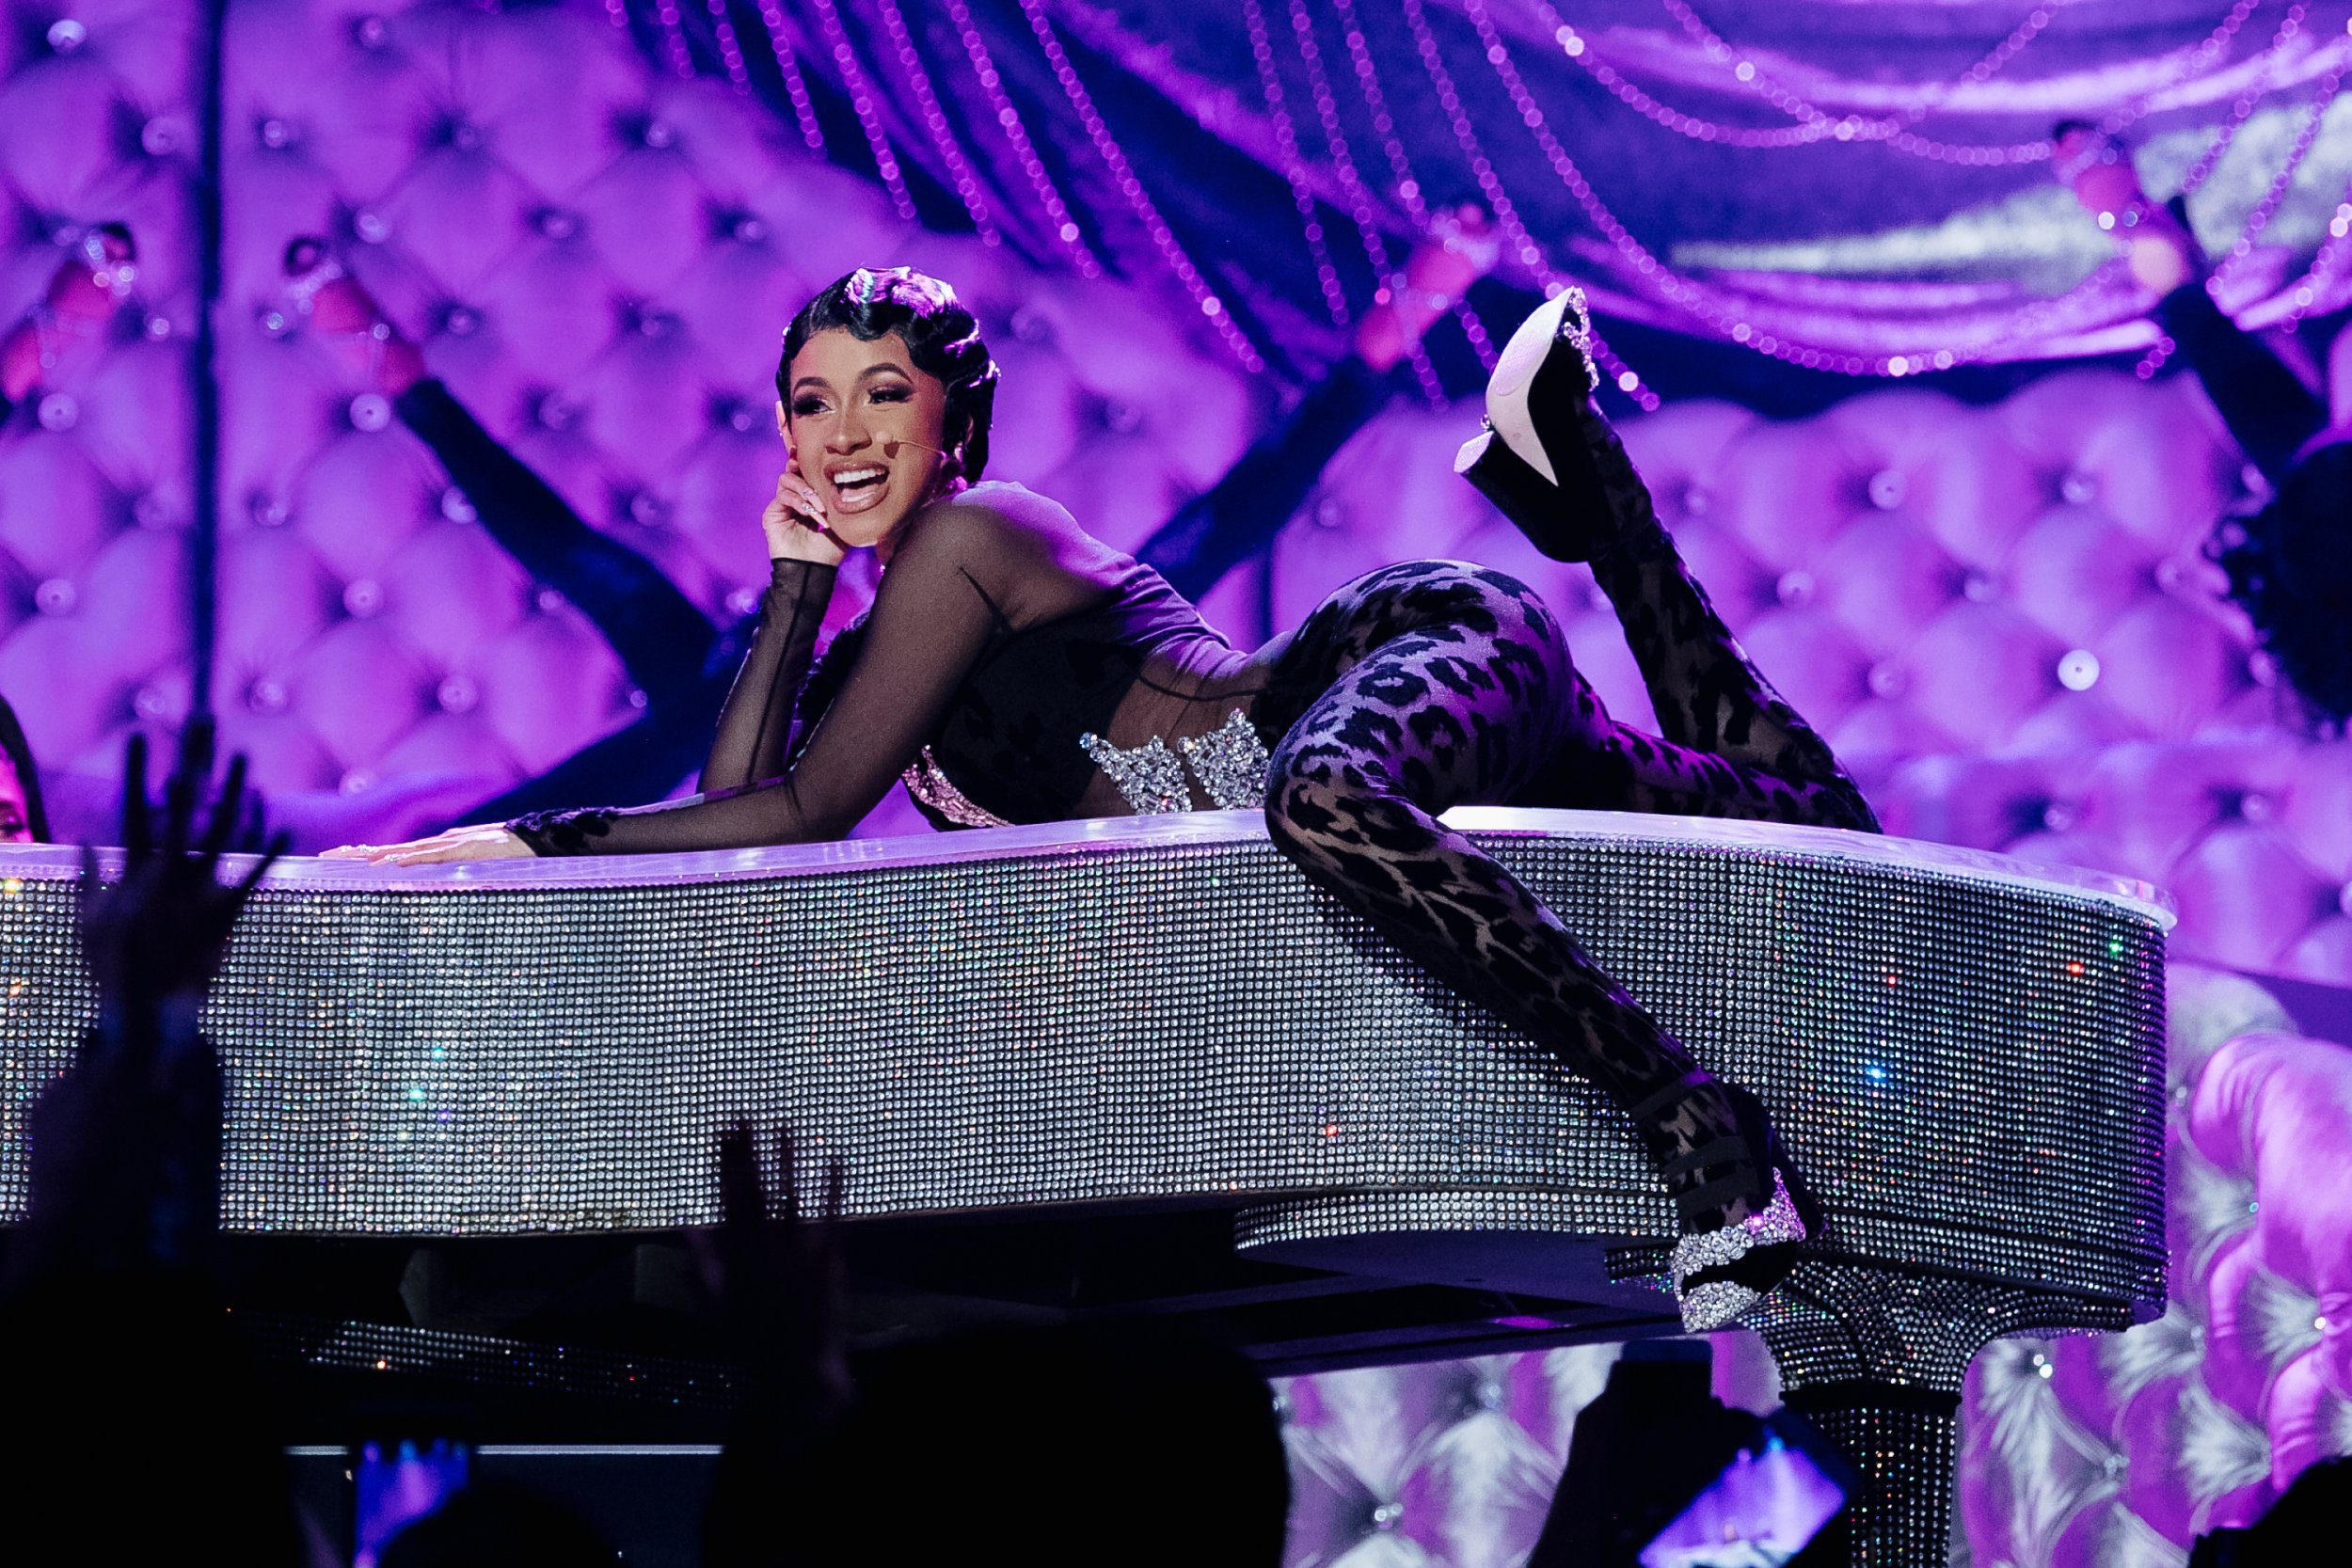 LOS ANGELES, CALIFORNIA - FEBRUARY 10: Cardi B performs onstage at the 61st annual GRAMMY Awards at Staples Center on February 10, 2019 in Los Angeles, California. (Photo by Emma McIntyre/Getty Images for The Recording Academy)